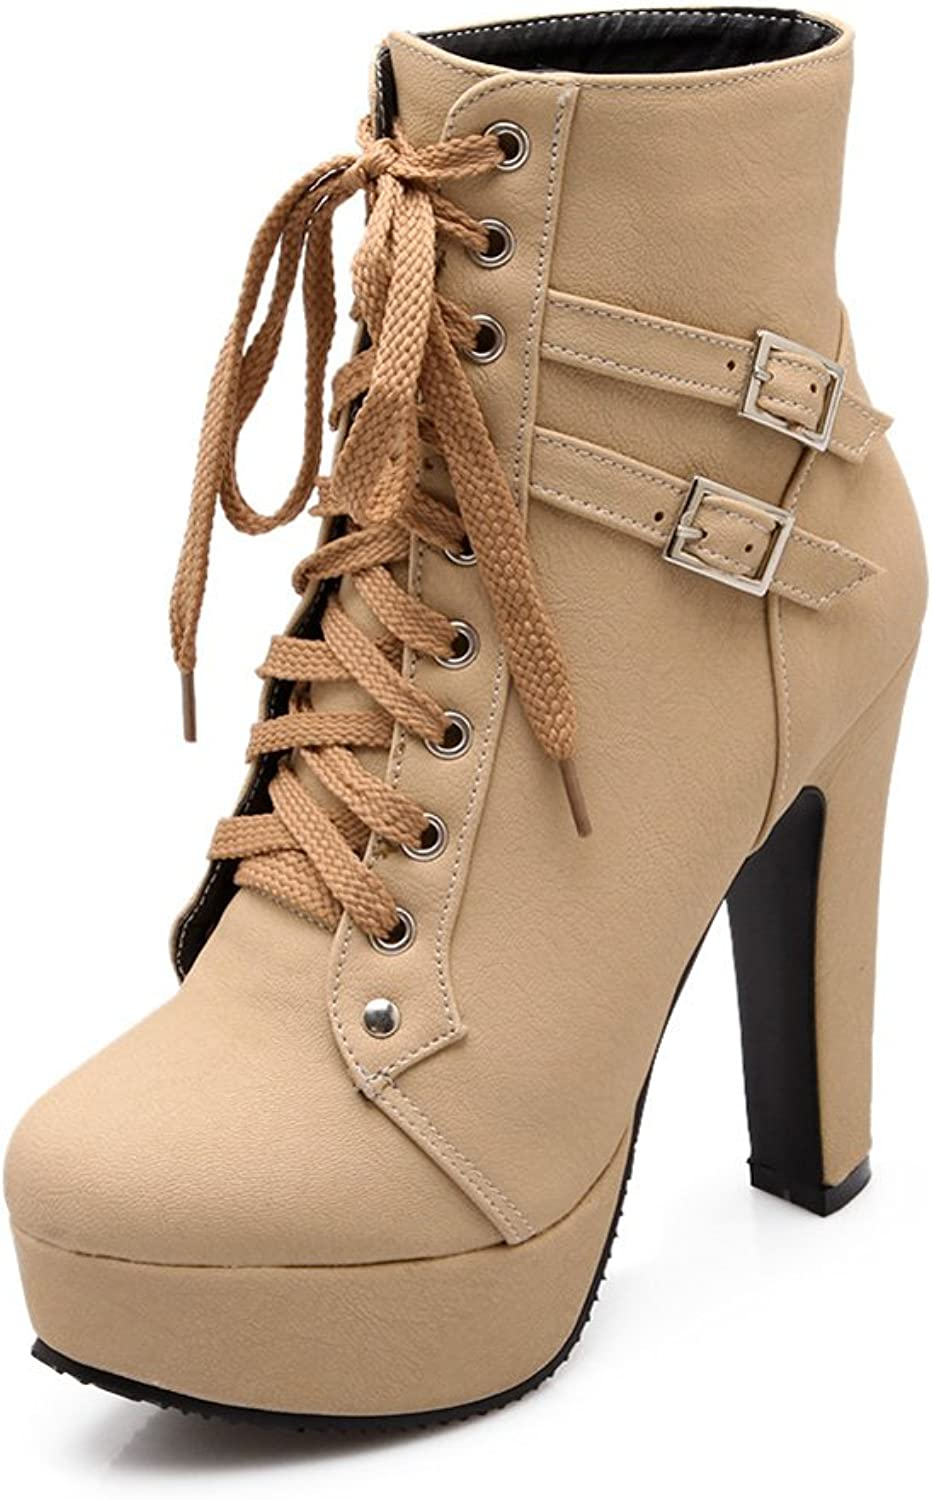 Lucksender Womens Fashion Round Toe High Chunky Heel Lace Up Martin Boots with Buckles Ornament